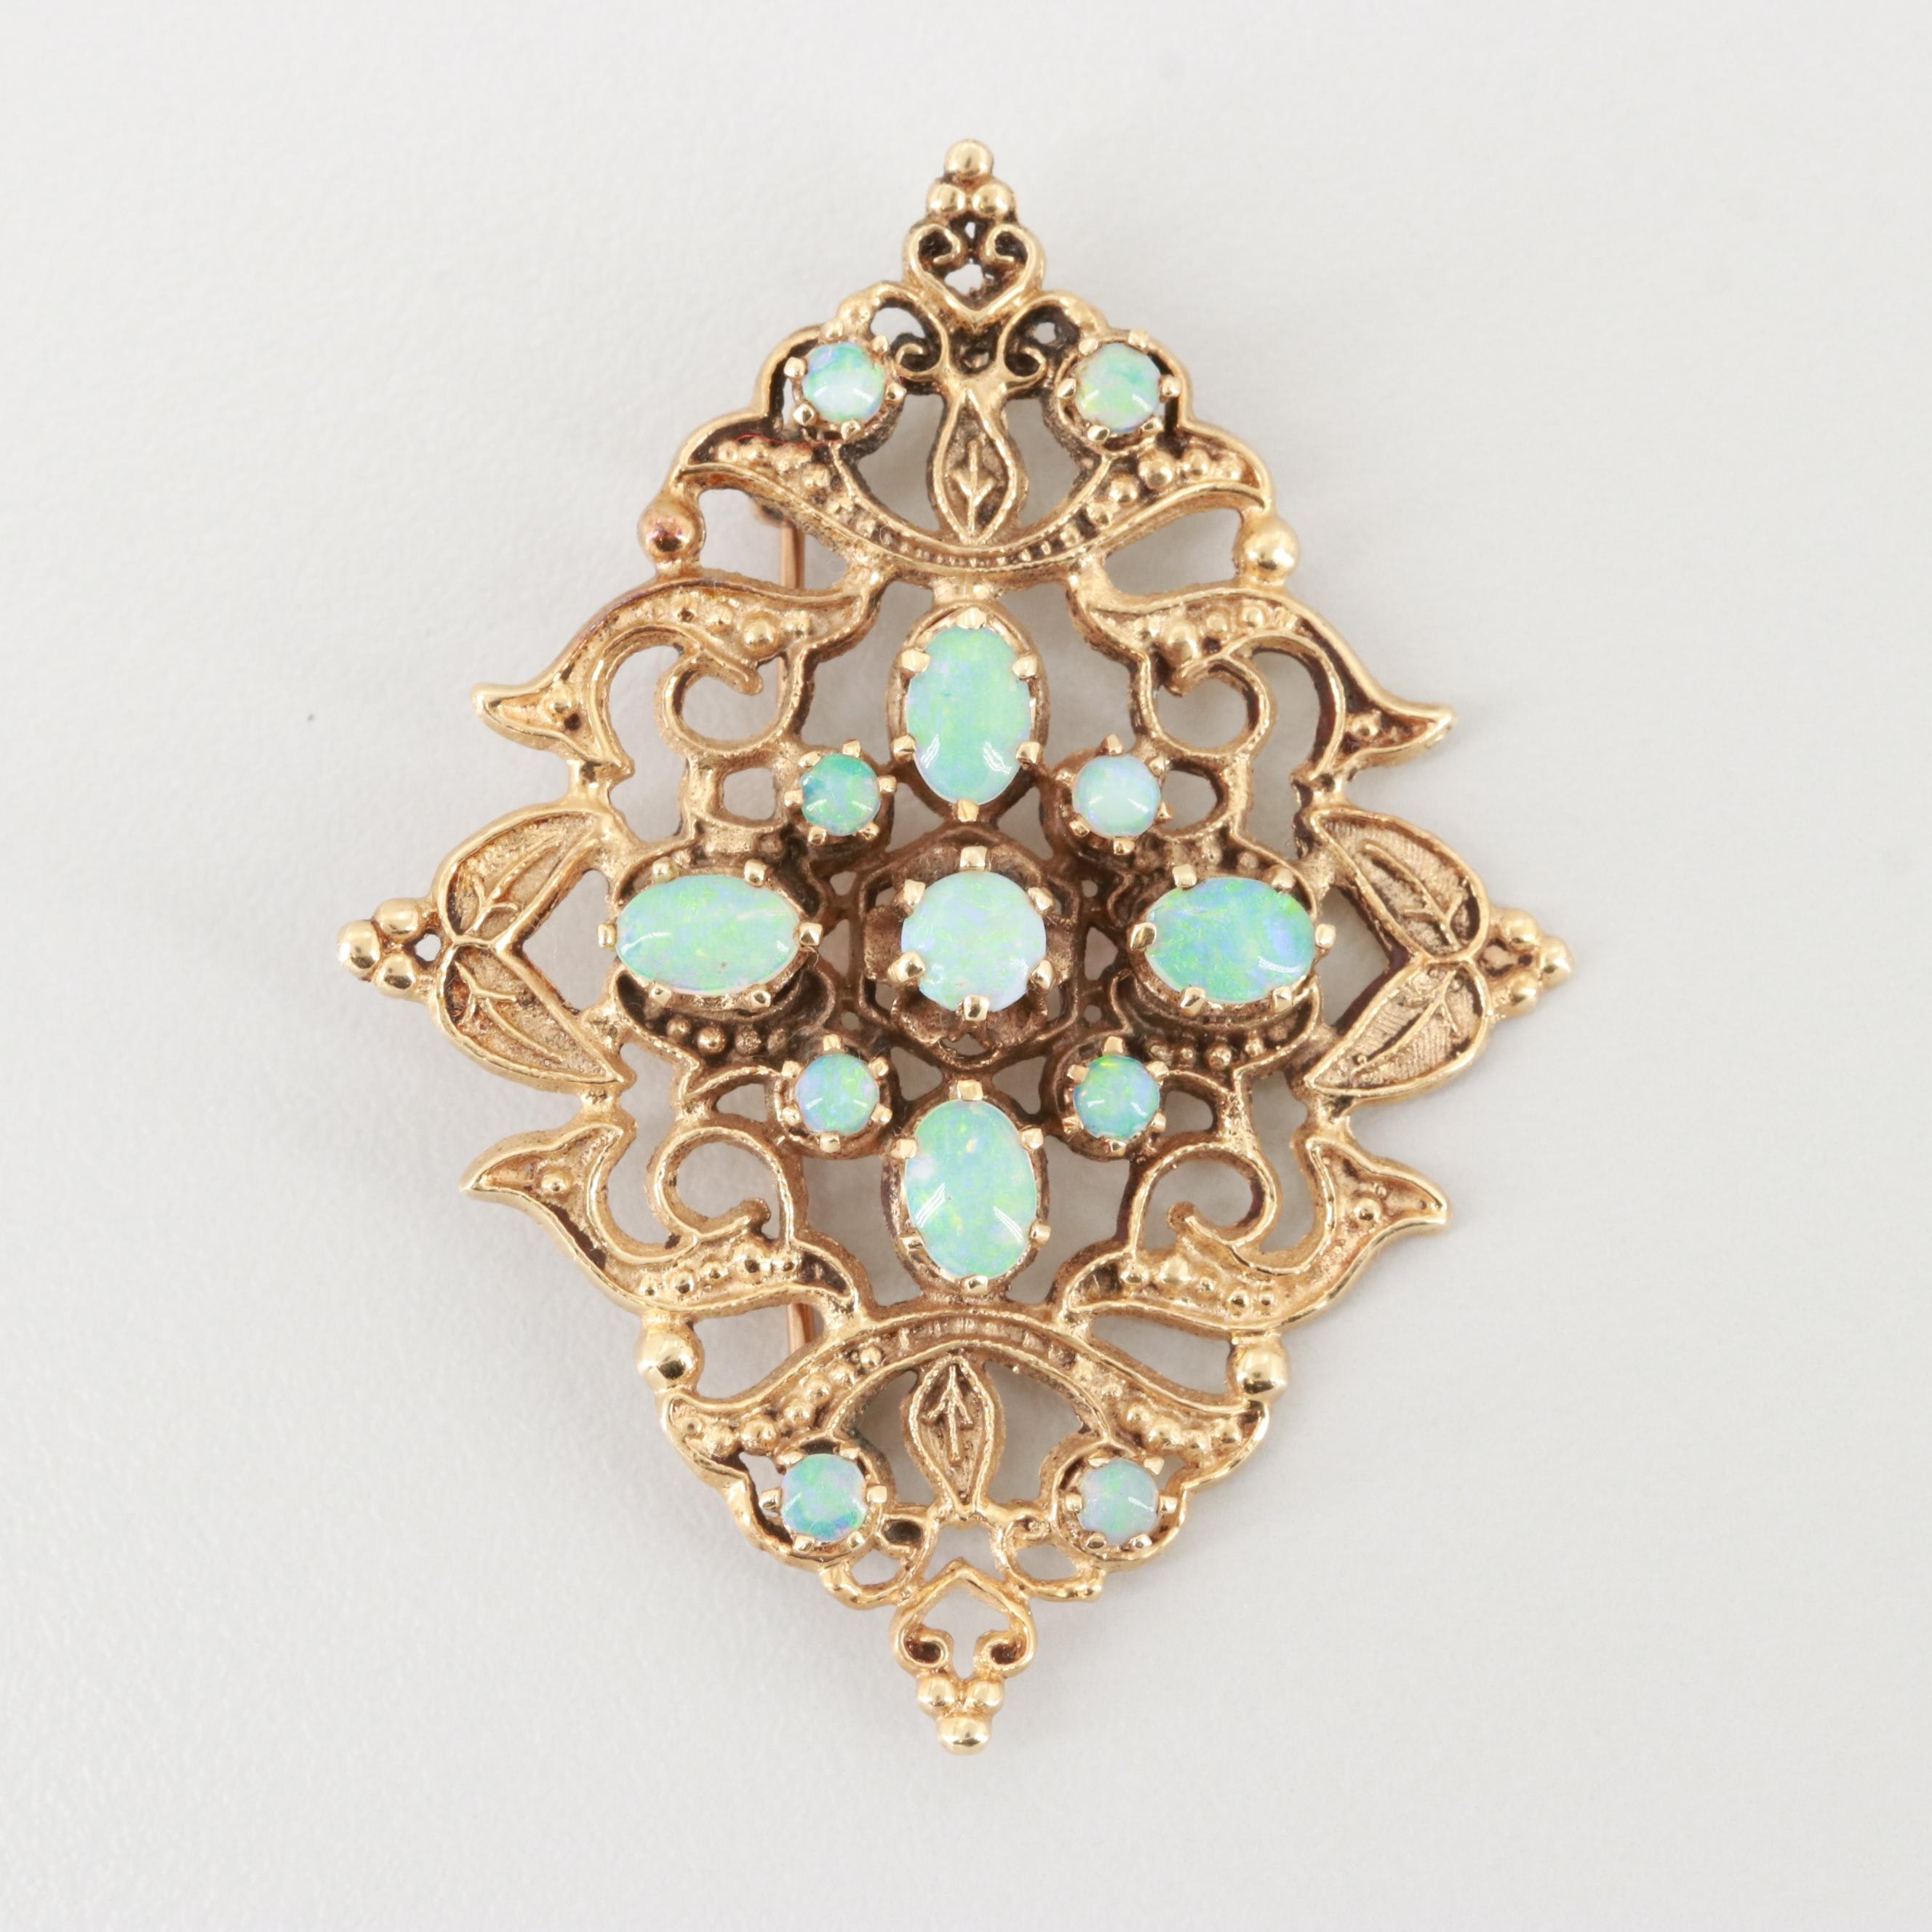 Vintage 14K Yellow Gold Opal Converter Brooch